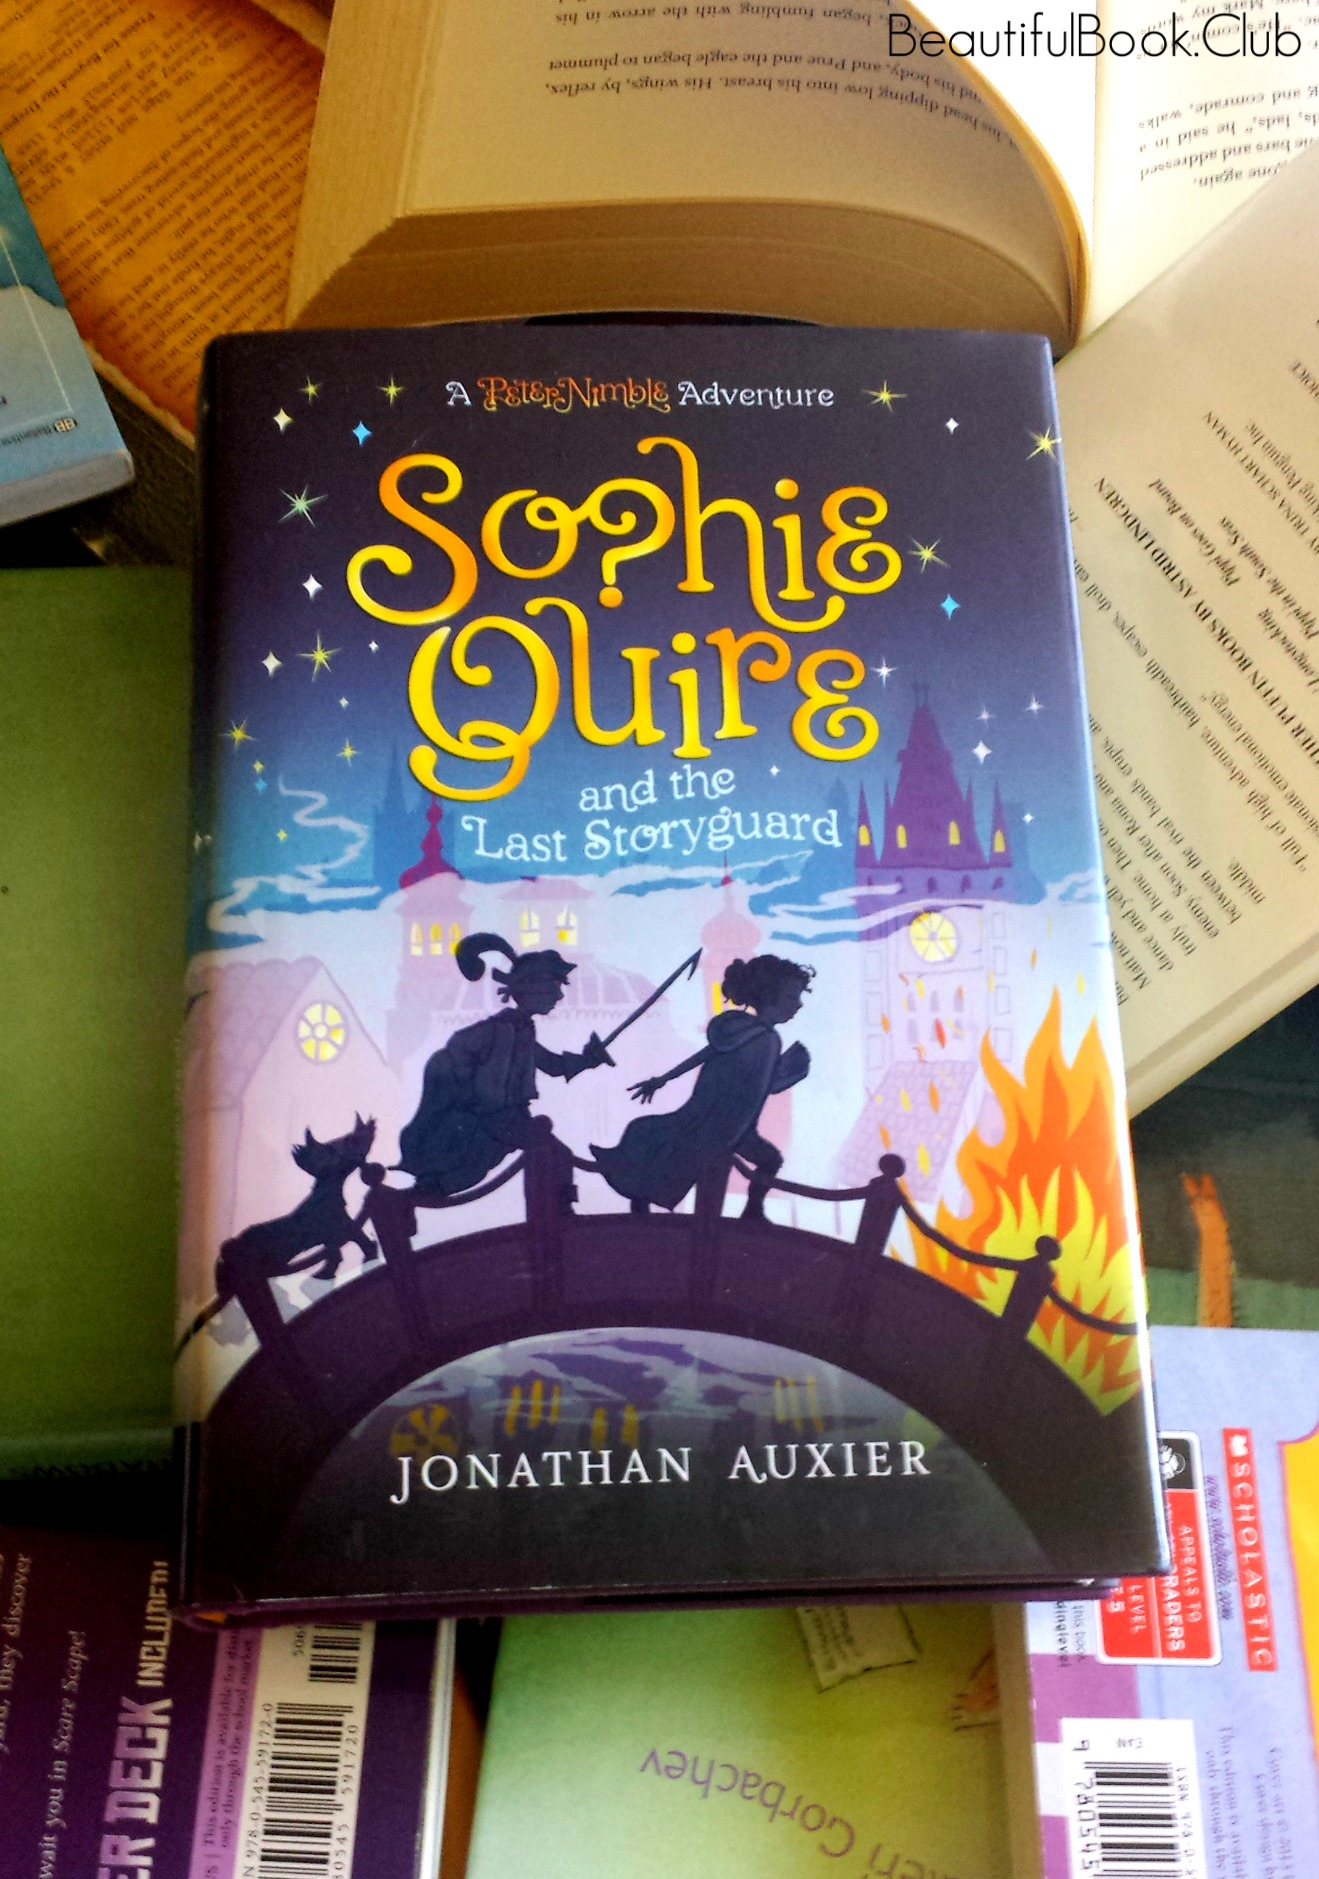 Sophie Quire and the Last storyguard by Jonathan Auxier front cover with book jacket